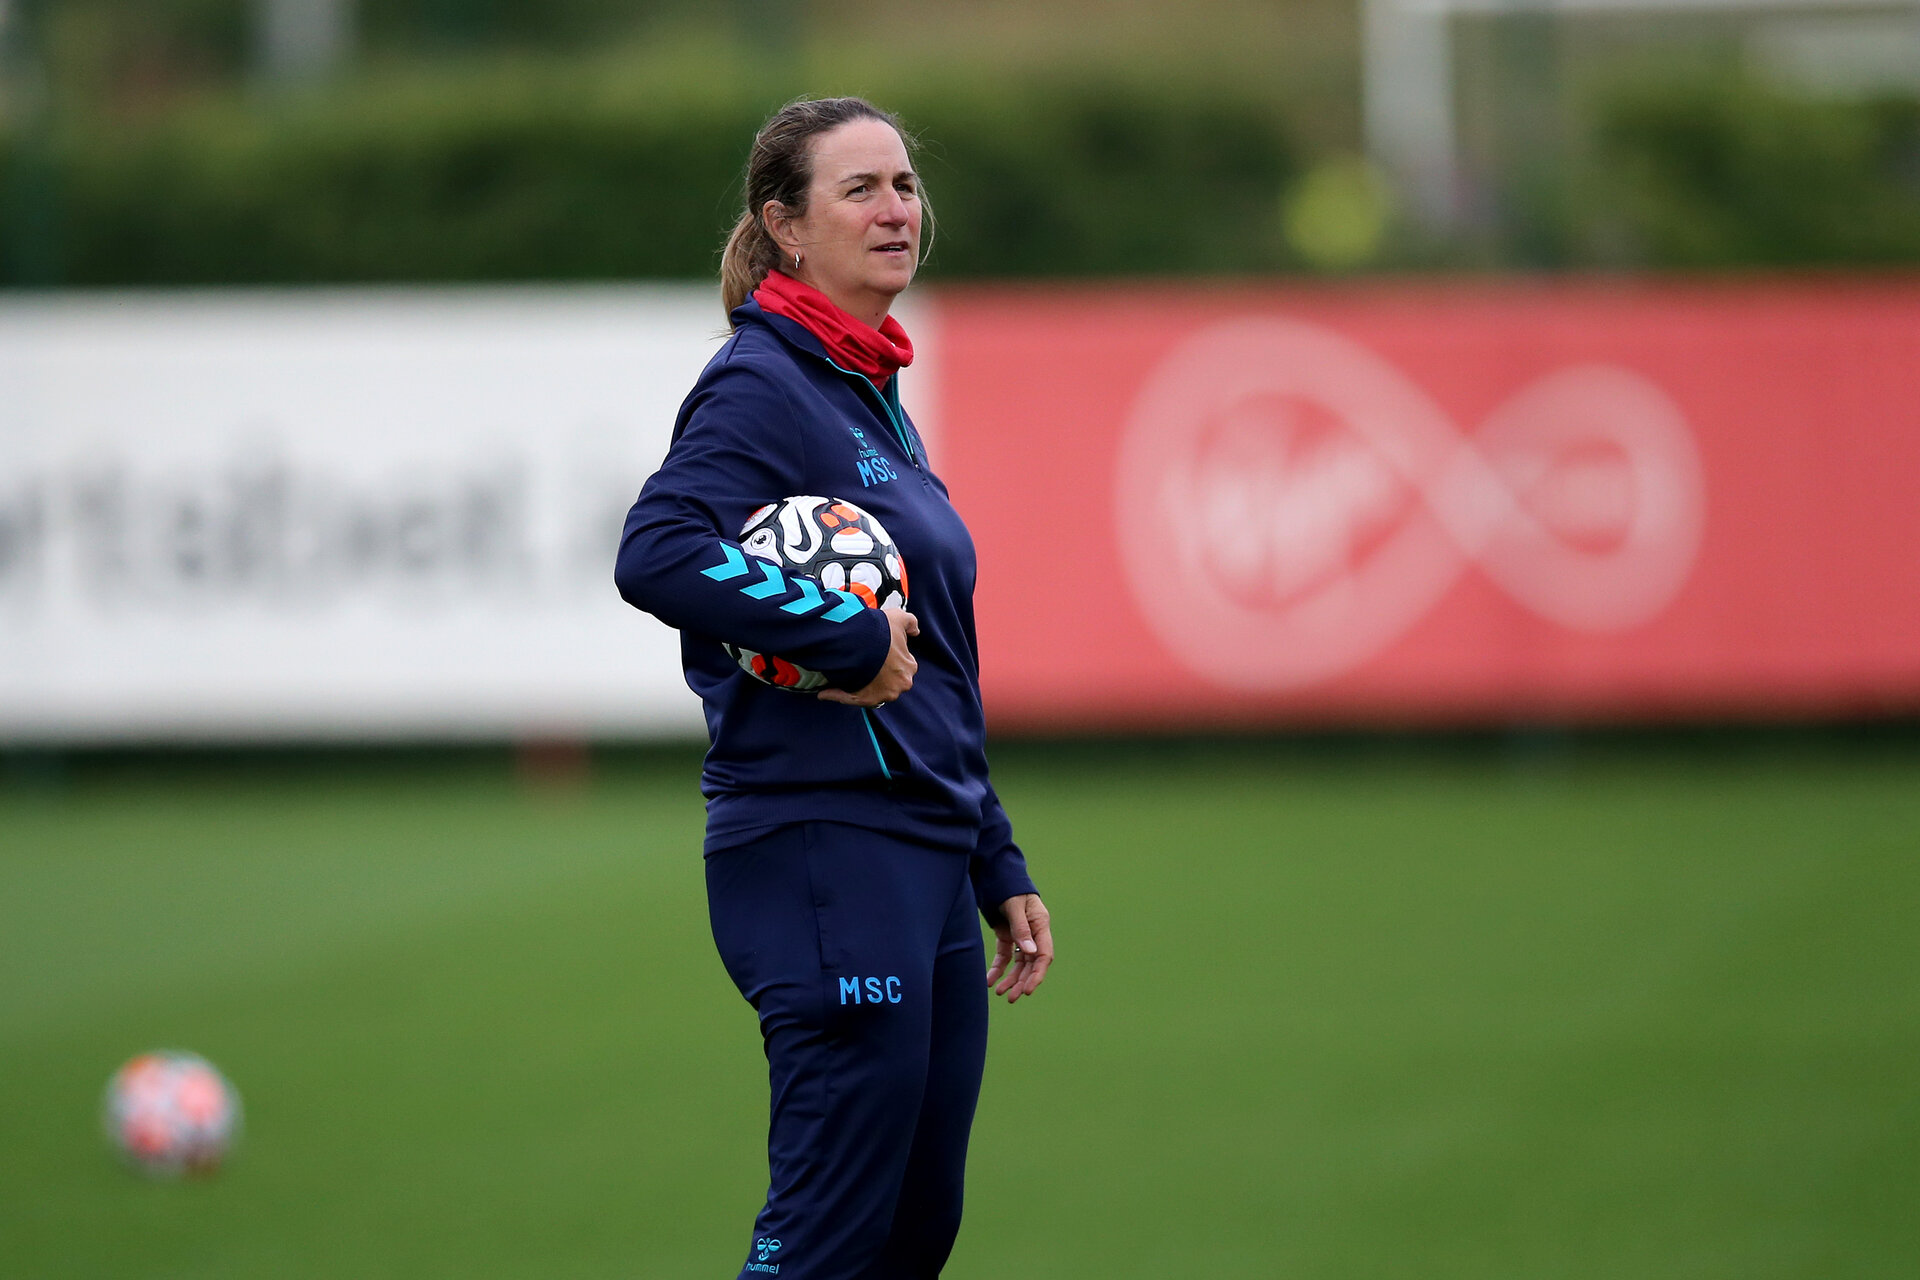 SOUTHAMPTON, ENGLAND - AUGUST 31: Marieanne Spacey-Cale during Southampton Women's training session at  Staplewood Training Ground on August 31, 2021 in Southampton, England. (Photo by Isabelle Field/Southampton FC via Getty Images)